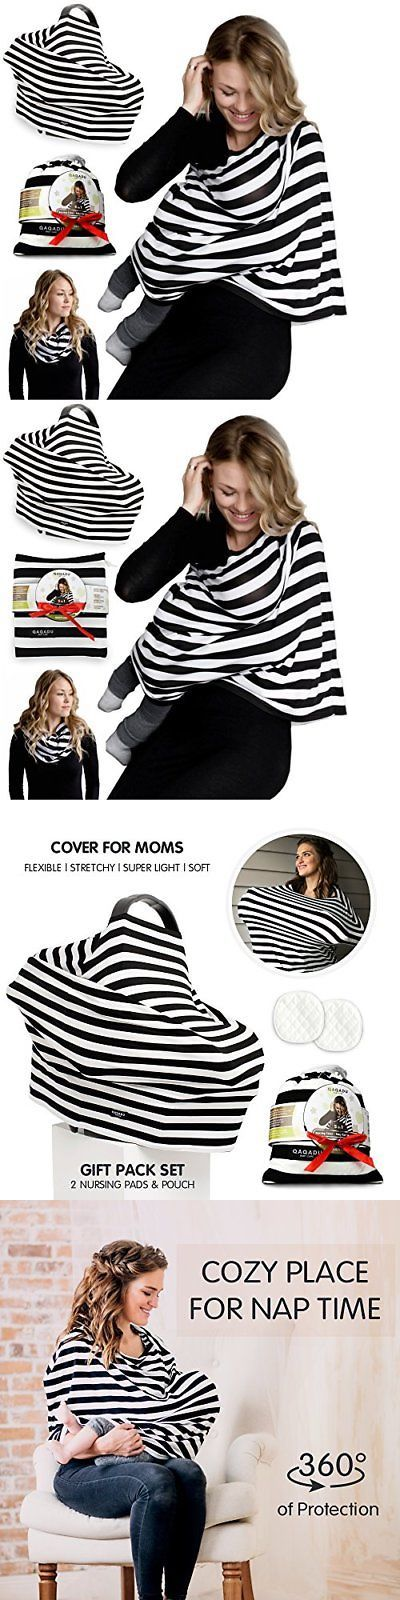 Nursing Covers Blankets 184340: Nursing Breastfeeding Cover Scarf Baby Car Seat Canopy Pads Pouch And Gift Pack -> BUY IT NOW ONLY: $32.99 on eBay!